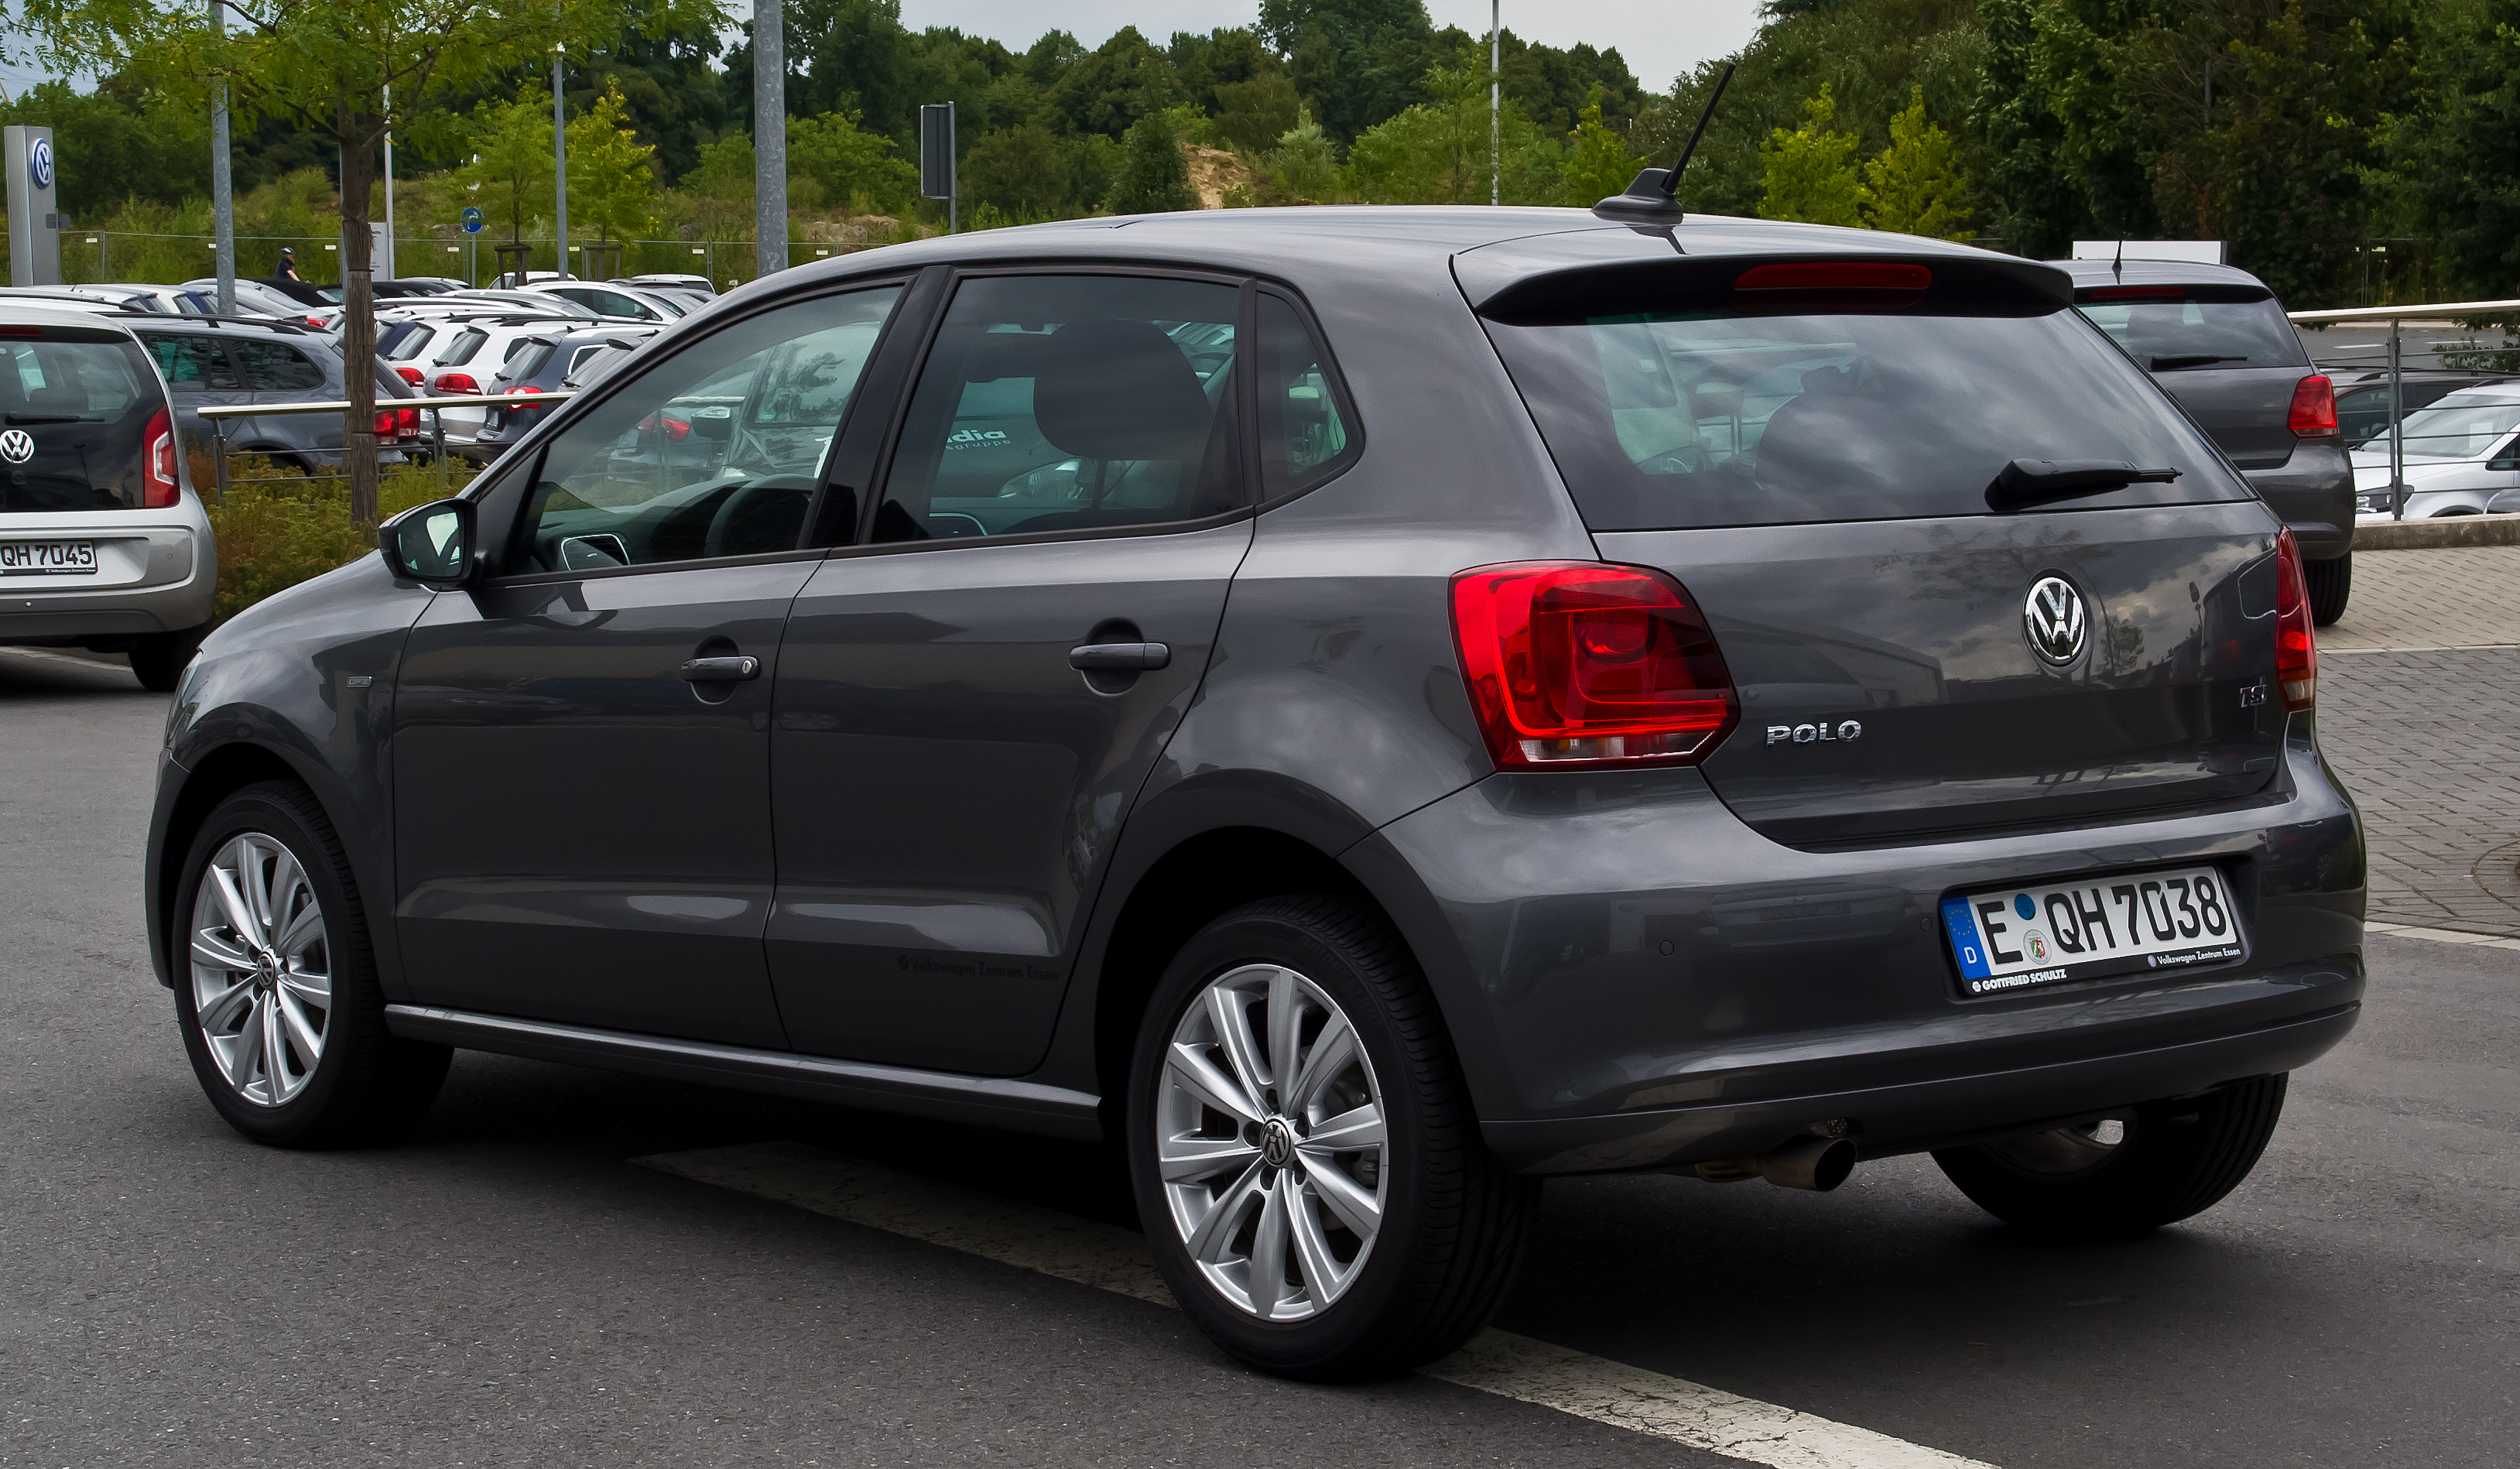 vw polo 1 2 tsi life v heckansicht 11 august 2013 wikipedia. Black Bedroom Furniture Sets. Home Design Ideas